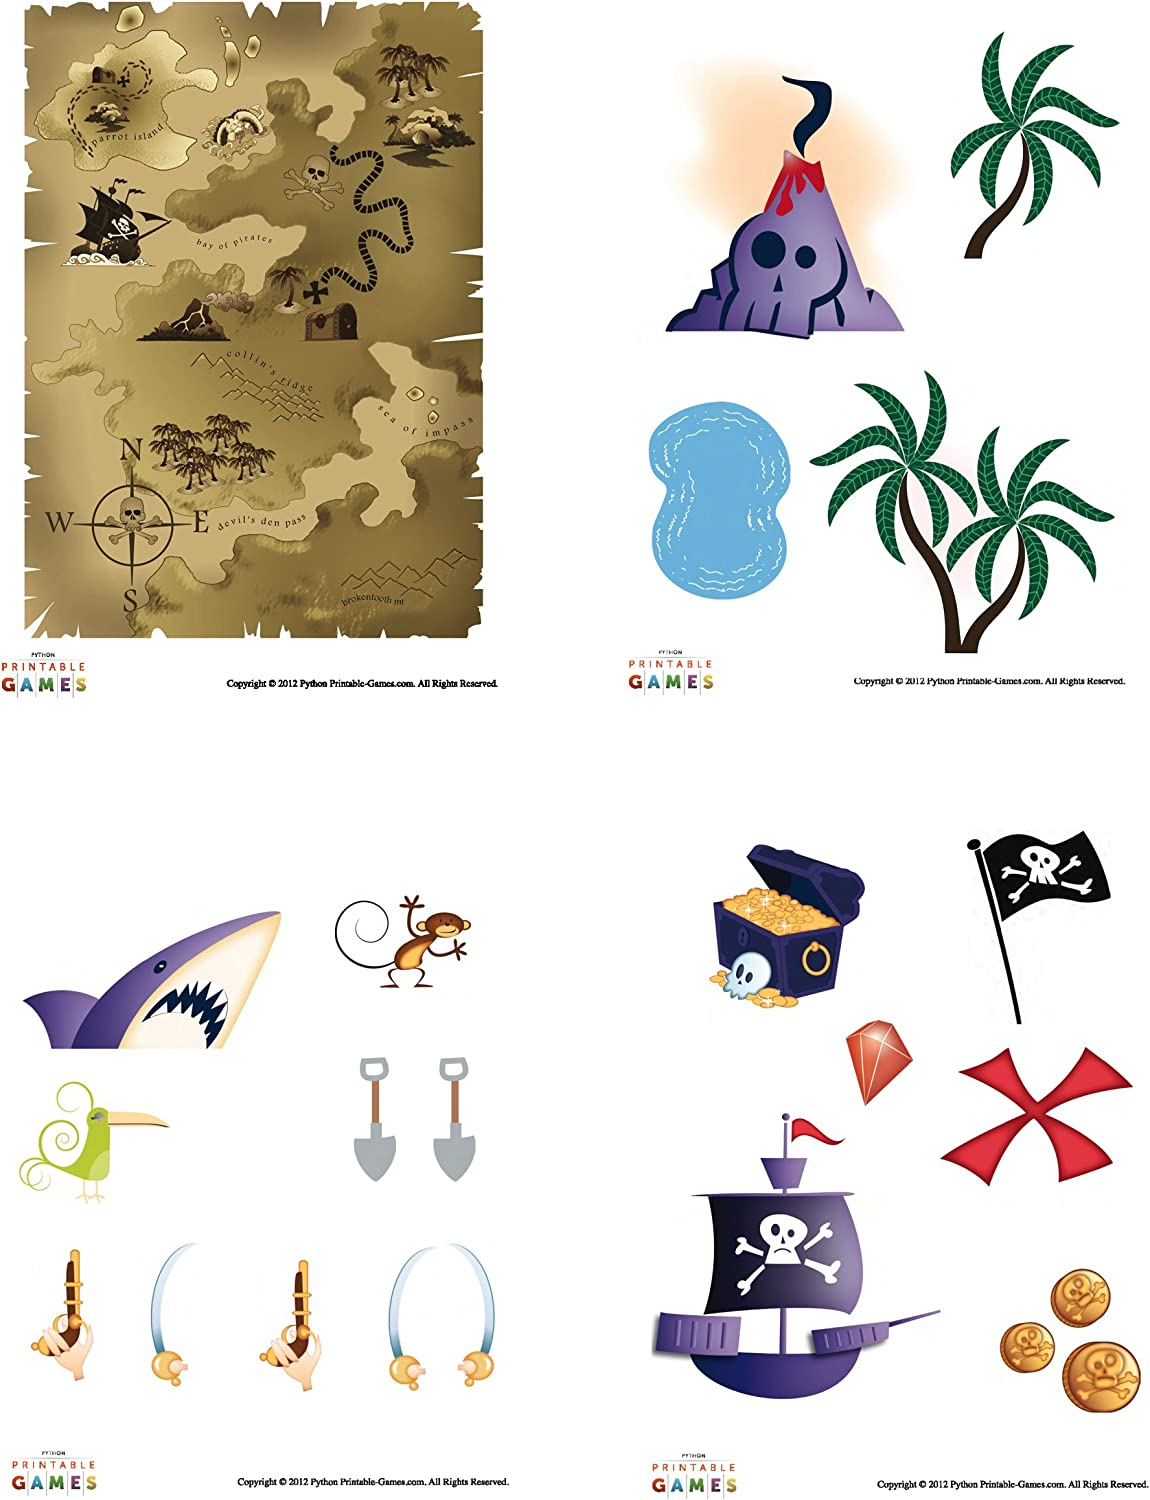 - Amazon.com: Printable Pirate Treasure Map Pirate Craft For Kids